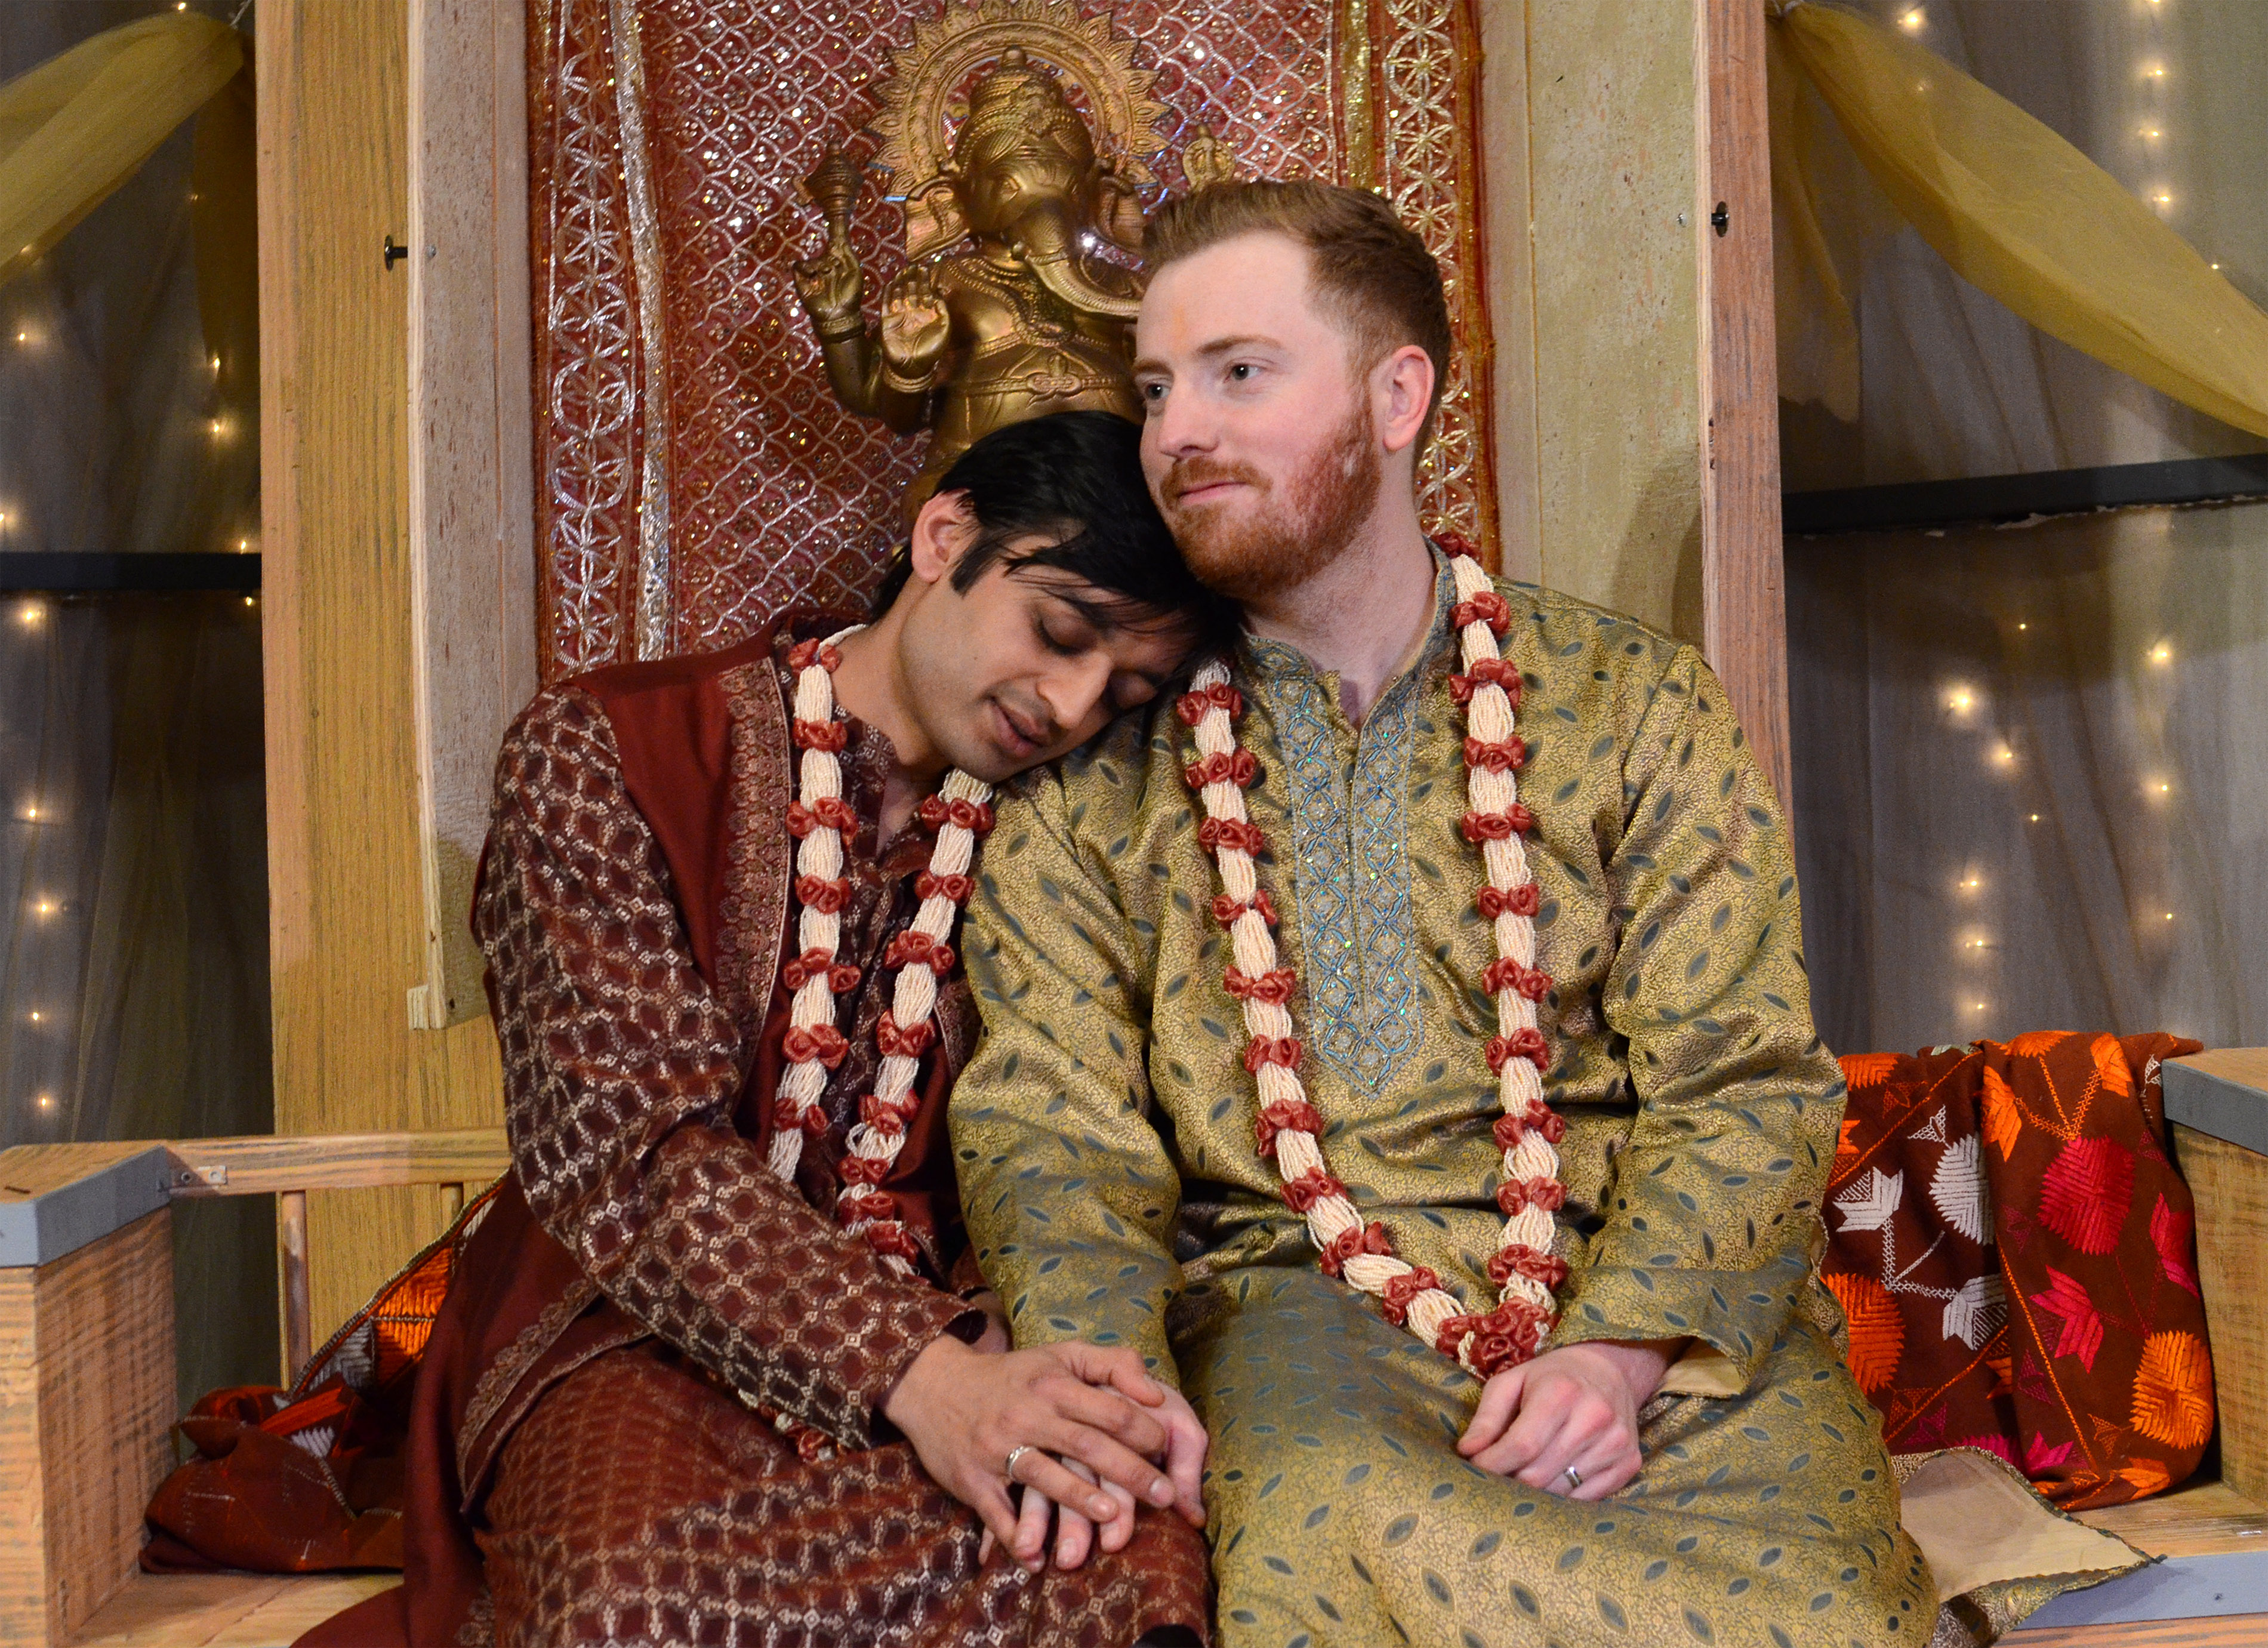 hindu single men in riley Meet caribbean singles connecting singles both locally and worldwide review your matches for free join now.